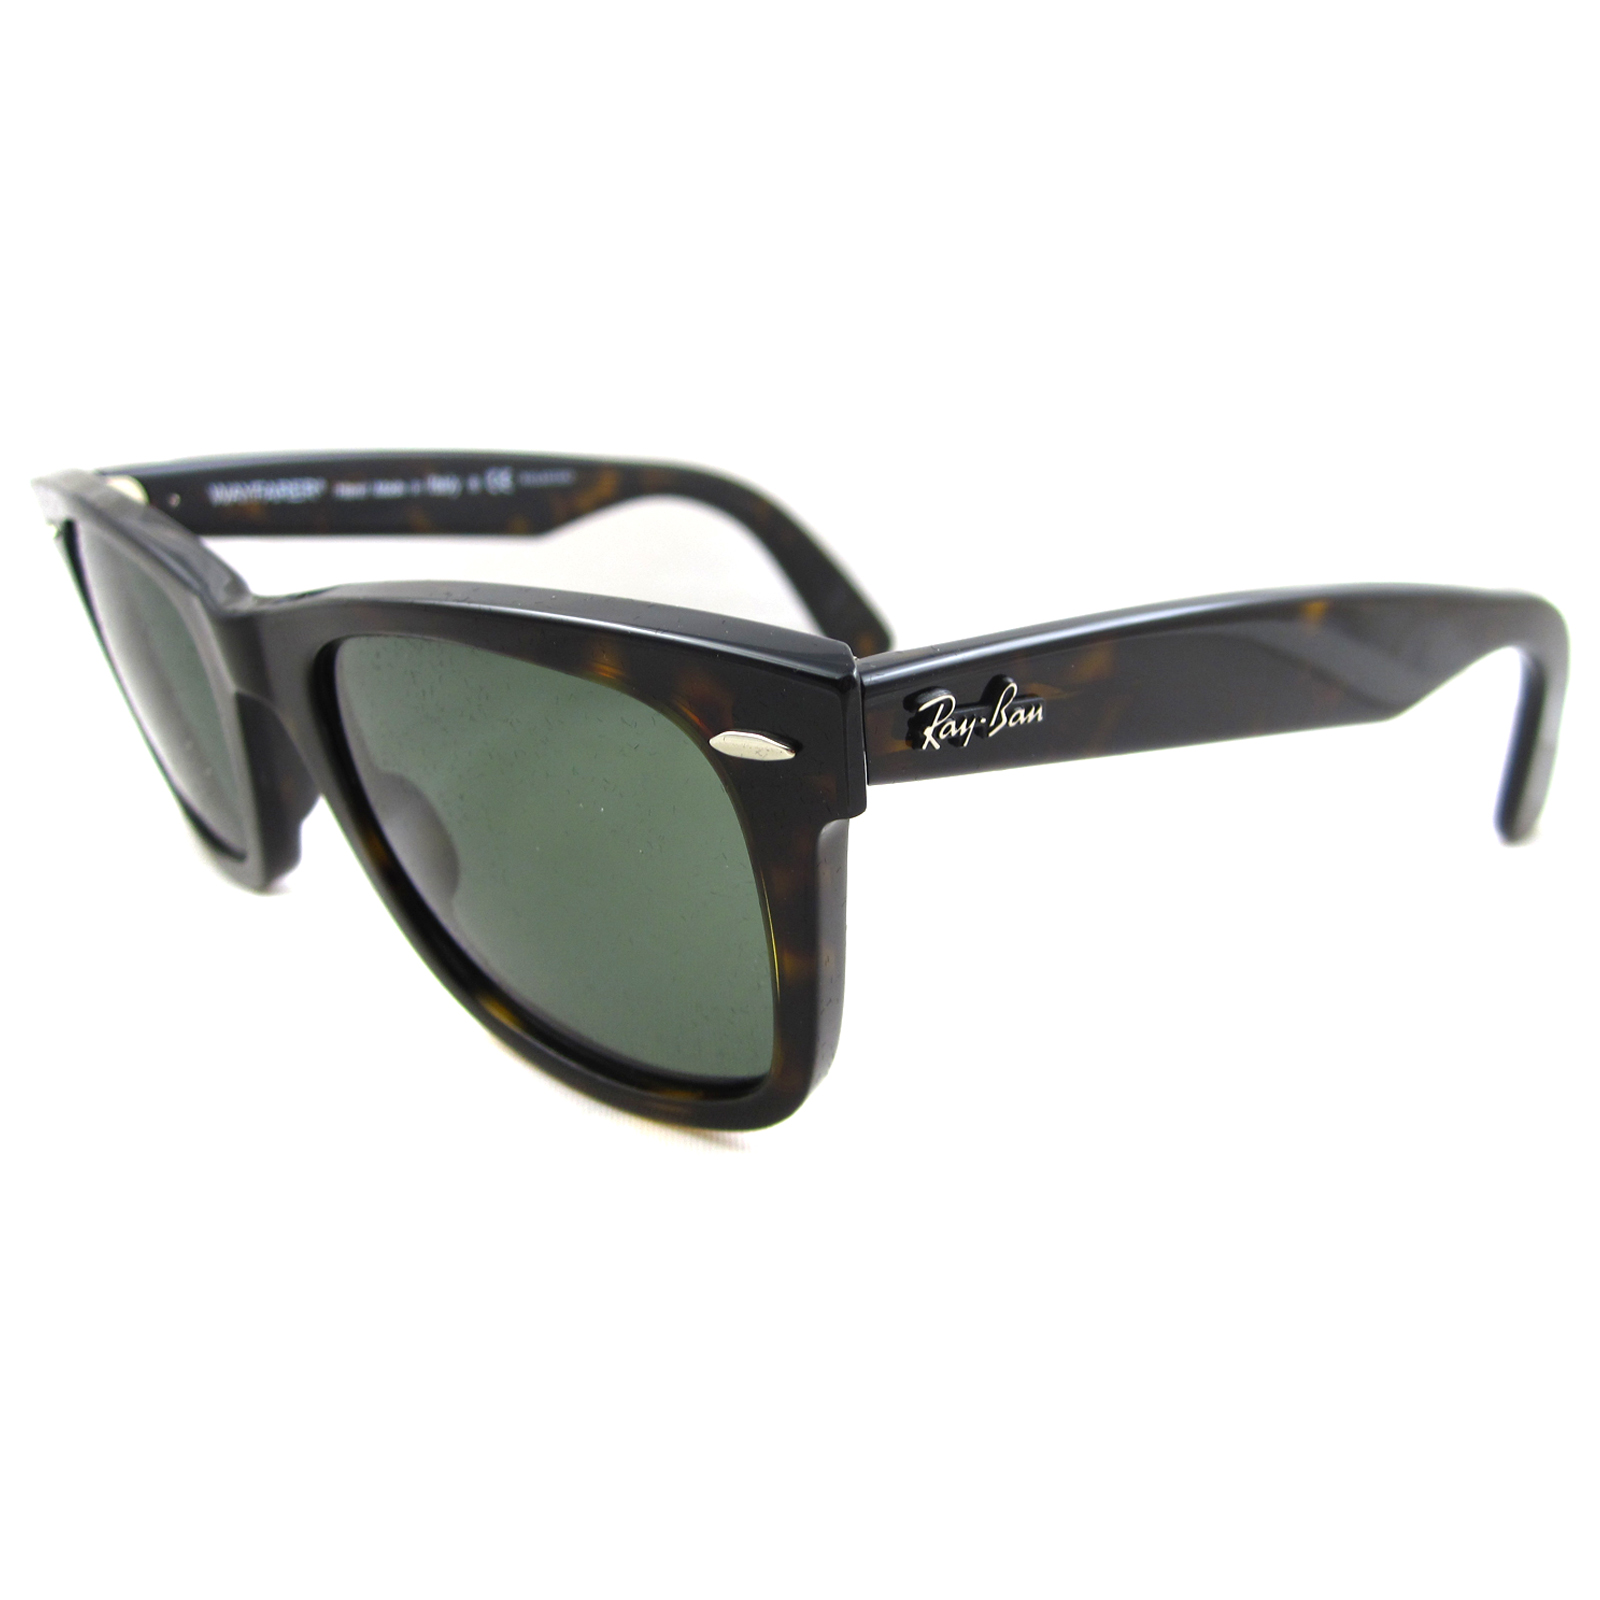 7fee4d3057e Sunglasses Heritage Malta Melbourne Repair « Ban Ray wRgH5qx